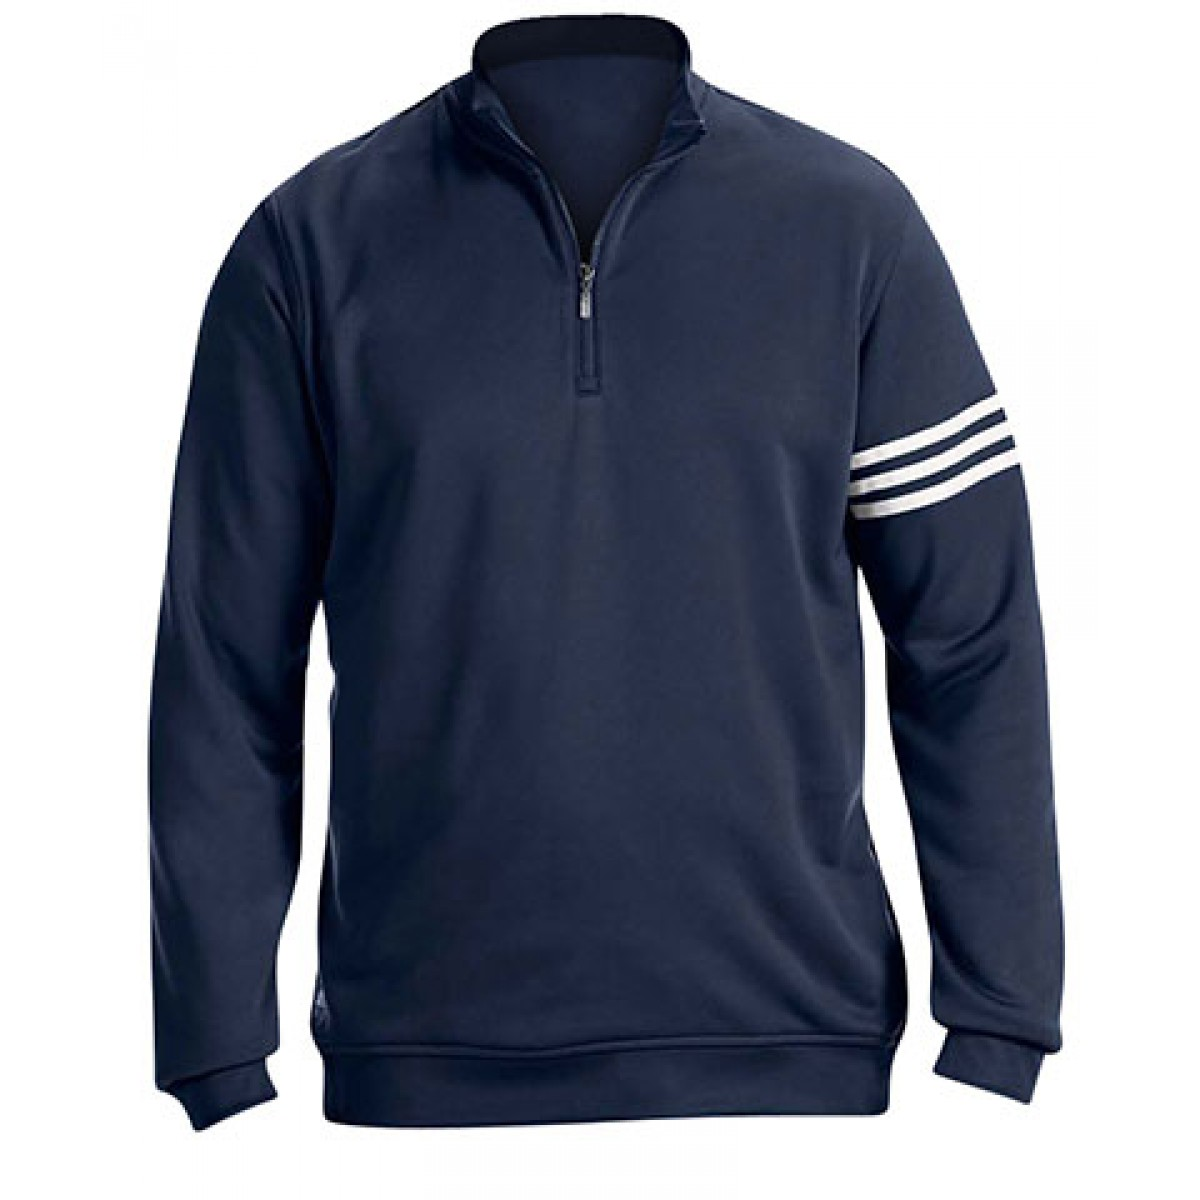 Adidas Men's 3-Stripes Pullover-Navy-2XL